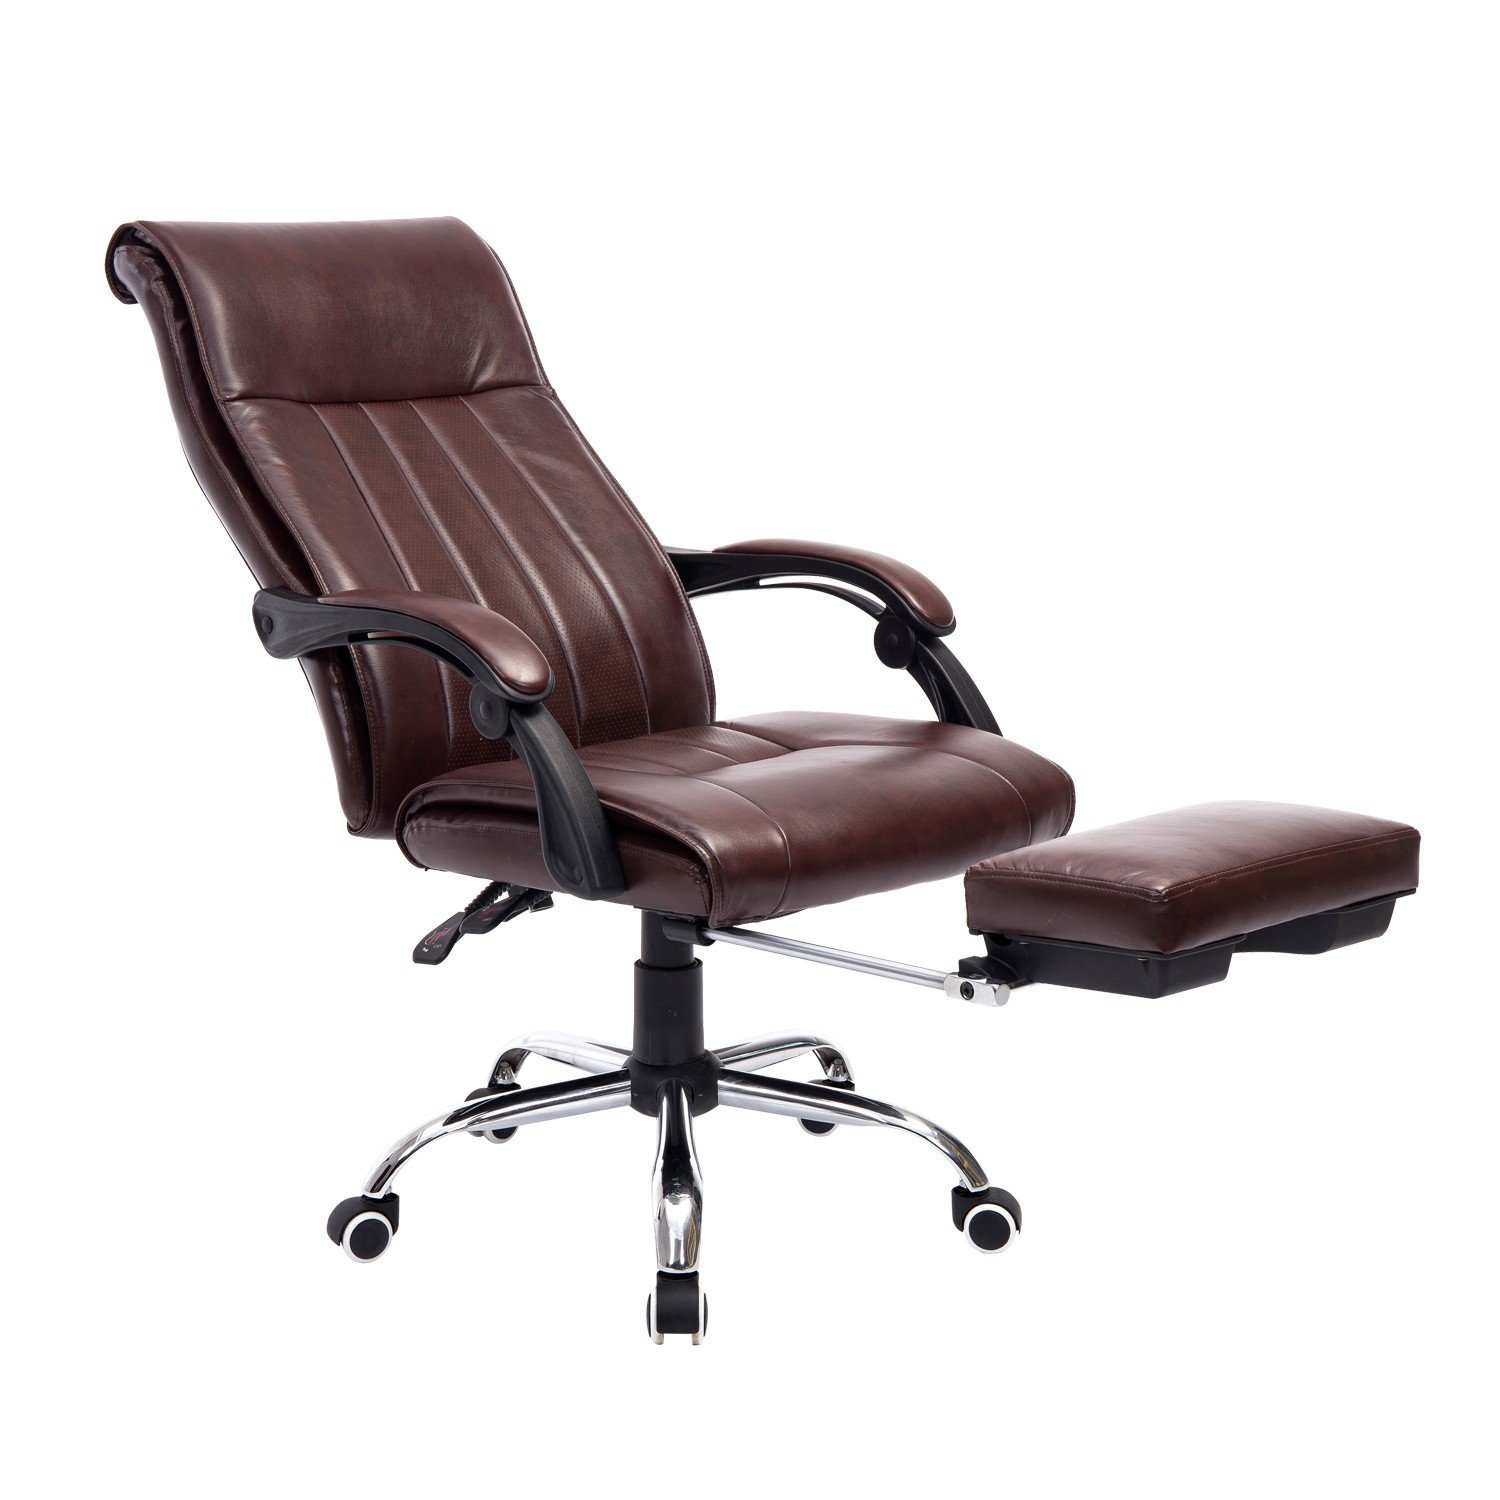 Modern Reclining Adjustable Swivel Office Chair with Footrest